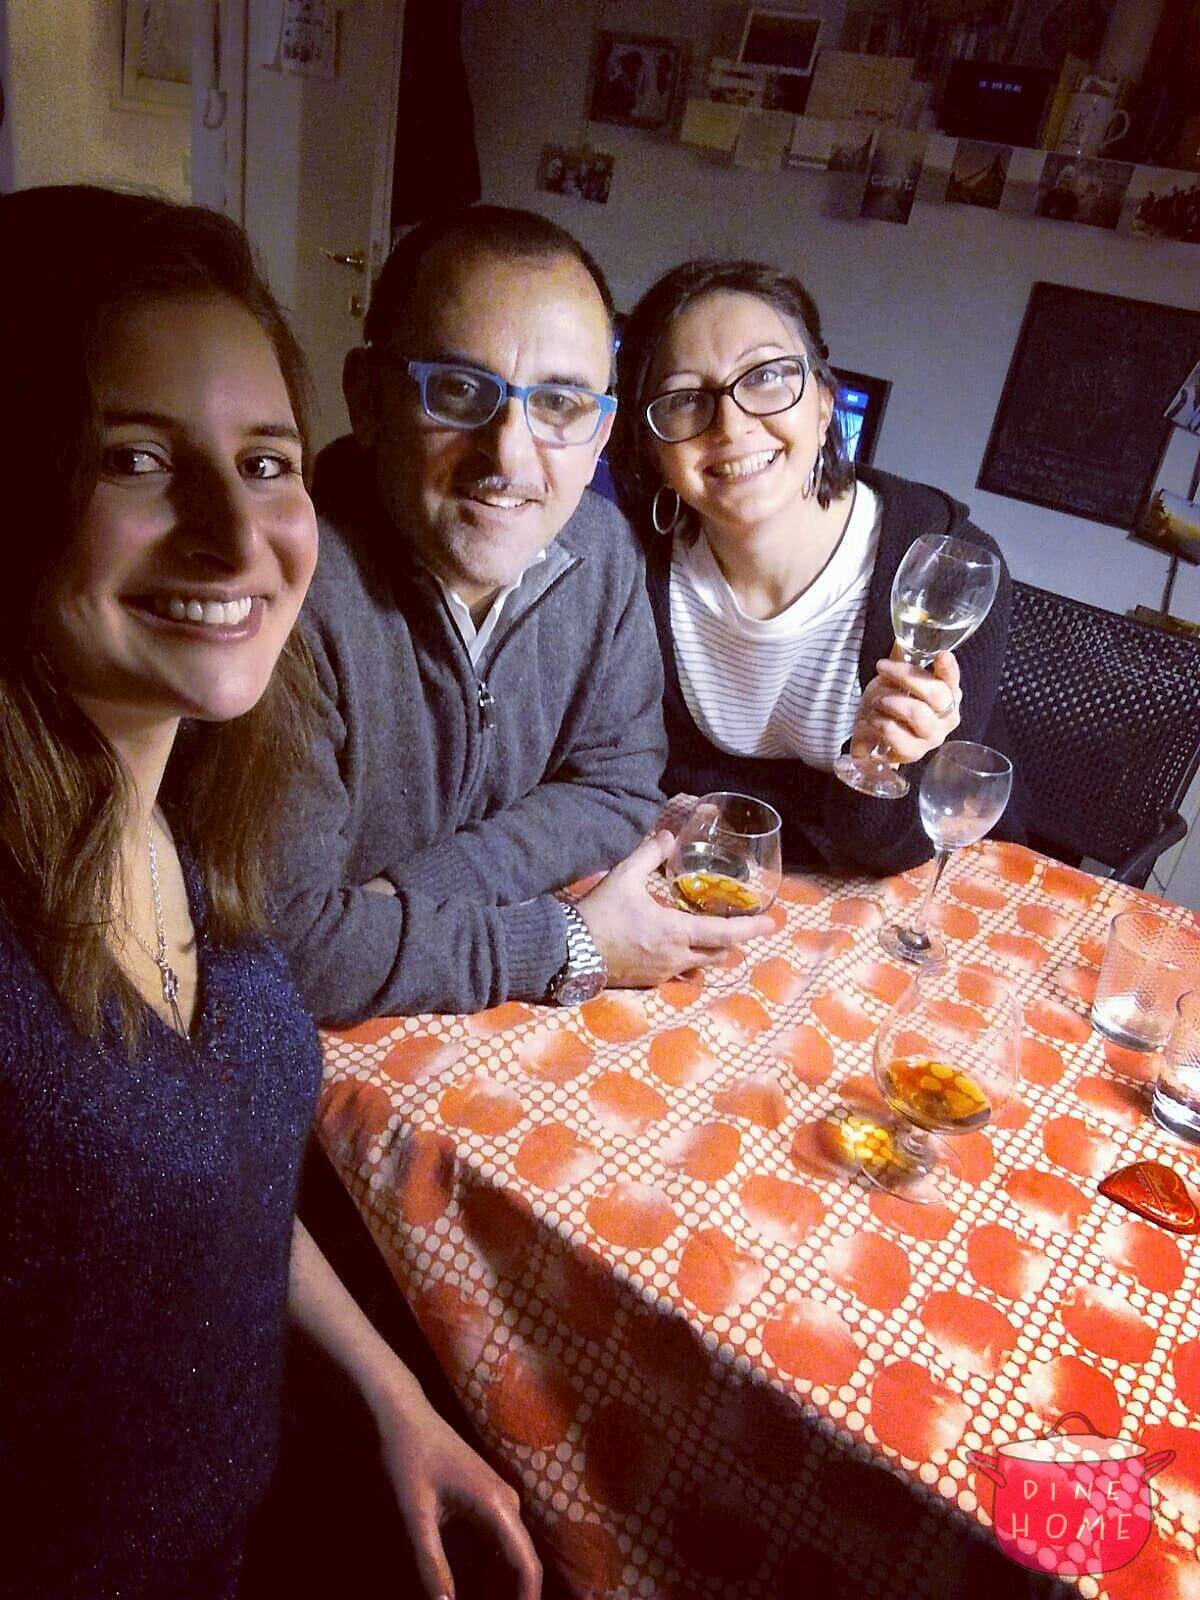 Aliza, U.S. student, having dinner with her Dinehome family.